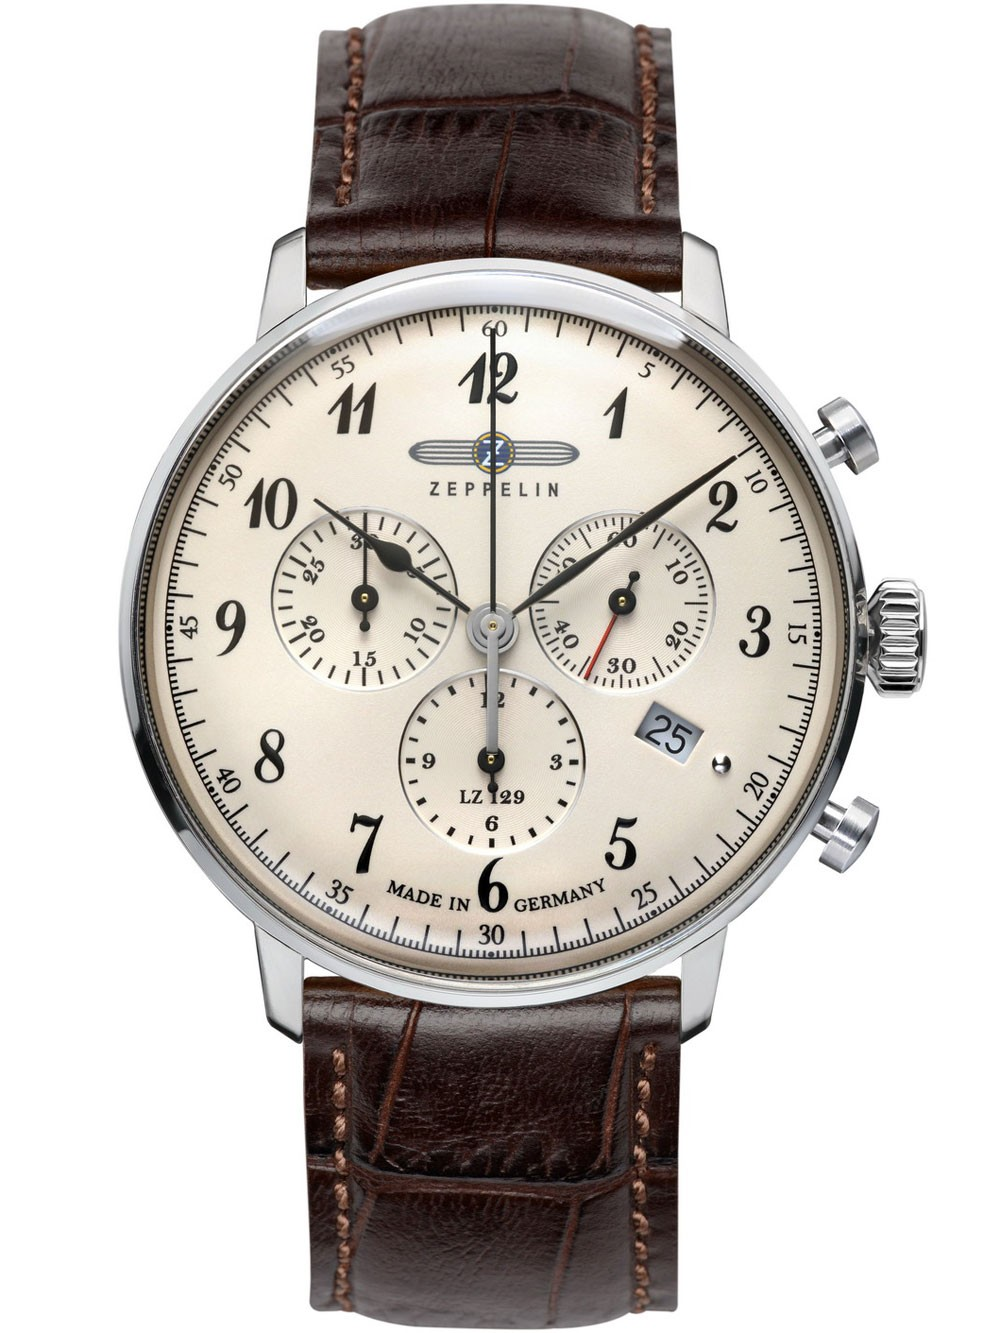 Zeppelin Hindenburg Chrono 7086-4 Herrenuhr 40 mm